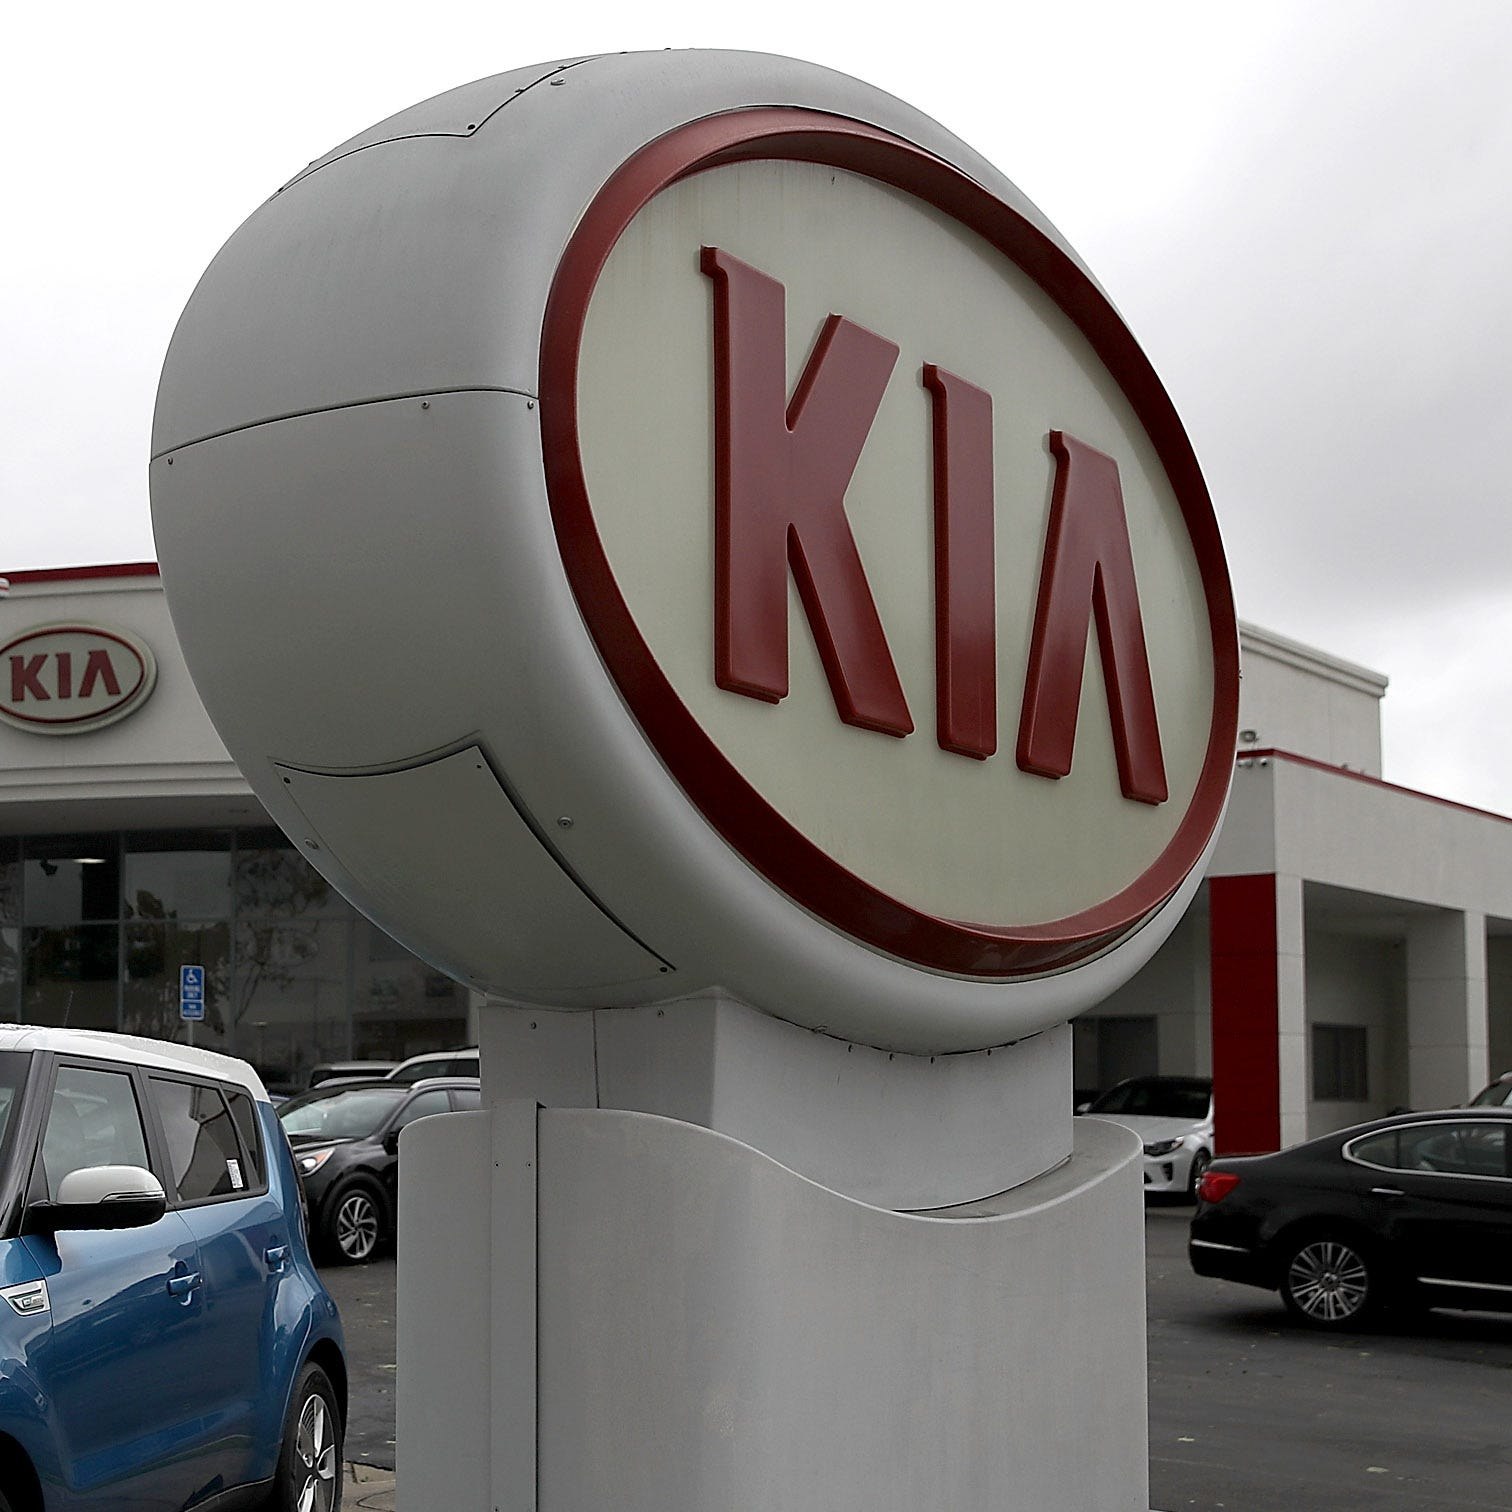 Kia to recall Optima, Sorento, Sportage models to fix problem that can cause fires